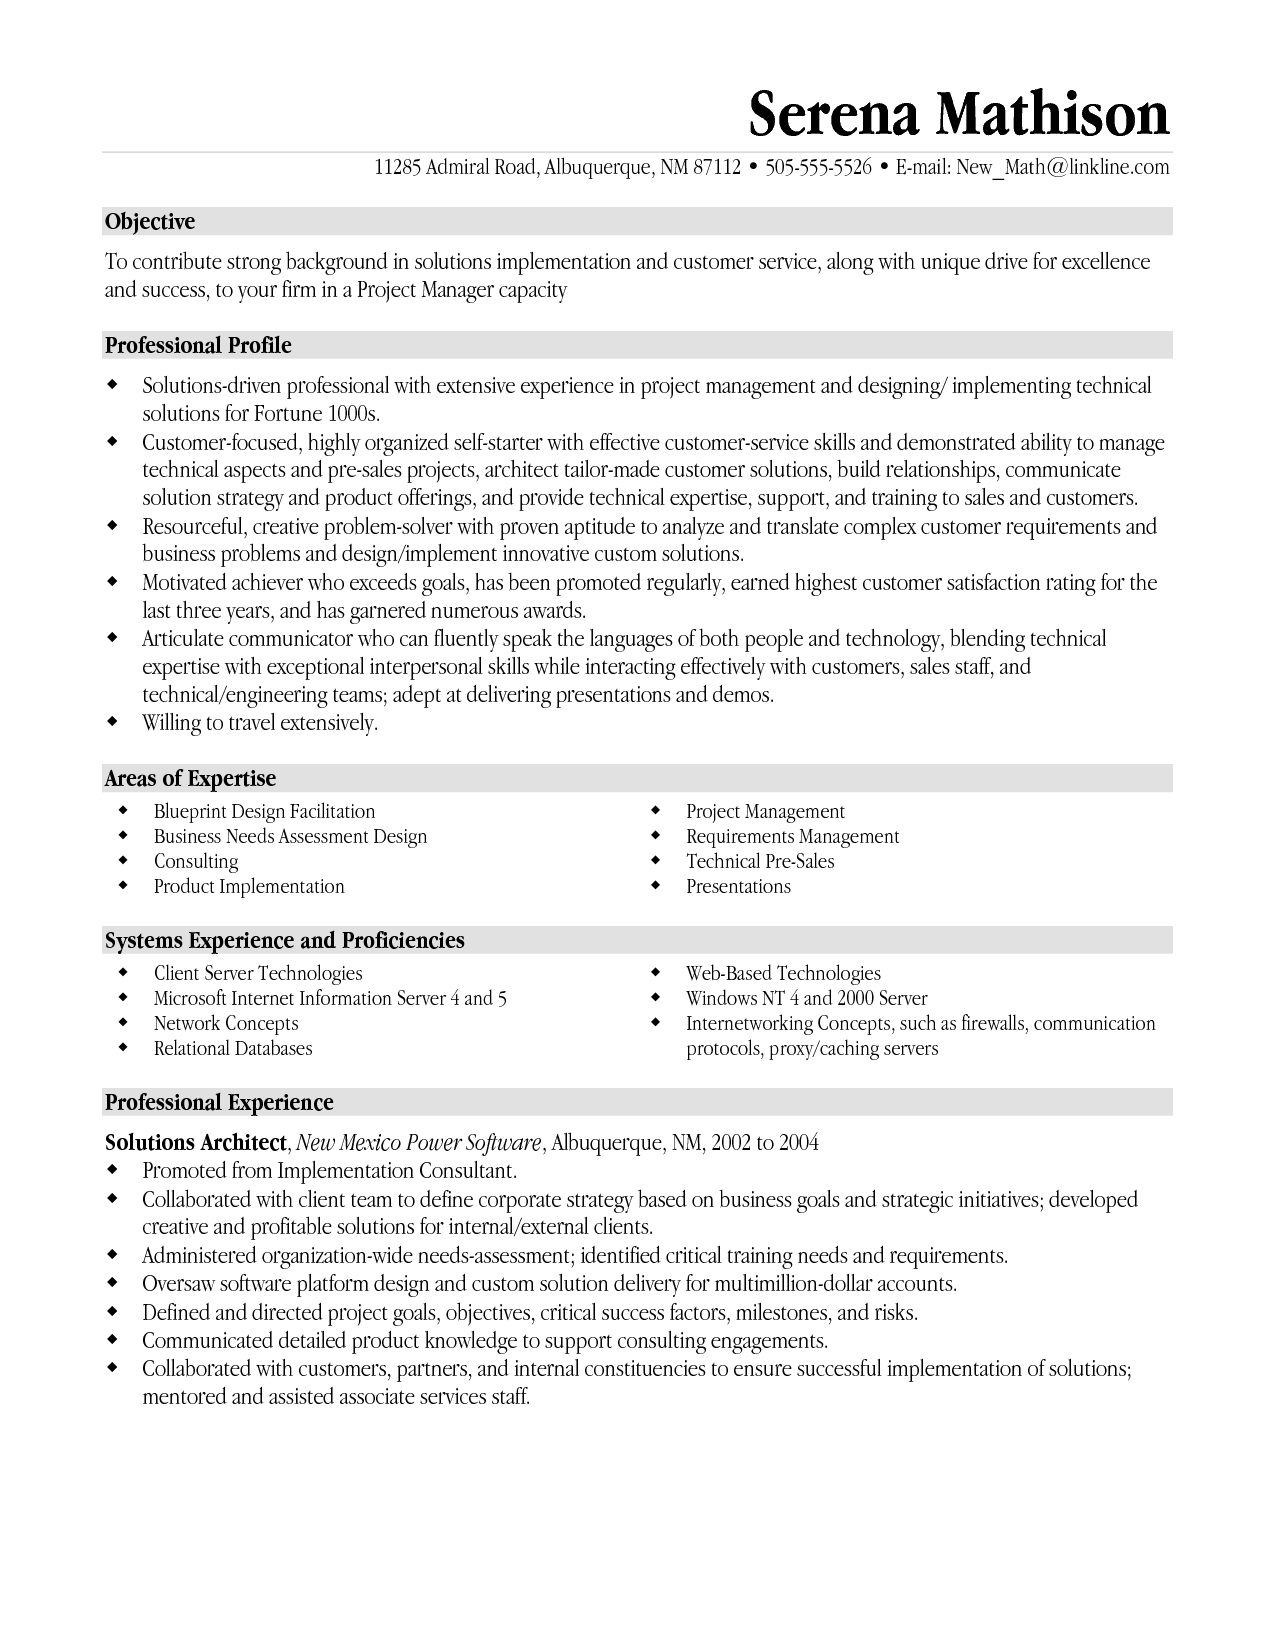 images about resume on pinterest   project manager resume        images about resume on pinterest   project manager resume  resume templates and resume